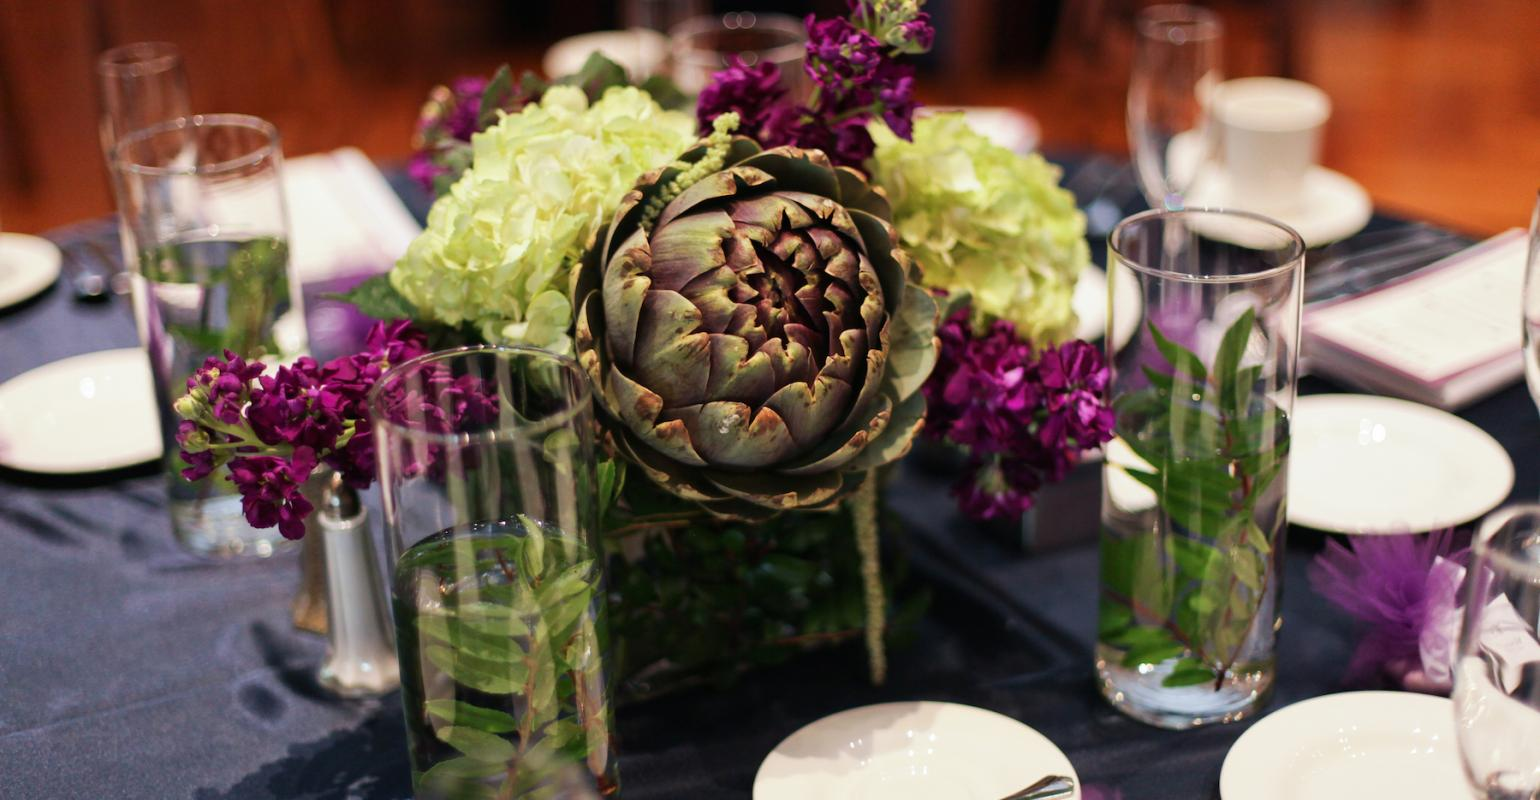 Sensuous Succulents Lush Foliage And Vivid Blooms Brighten Event Centerpieces Today Special Events